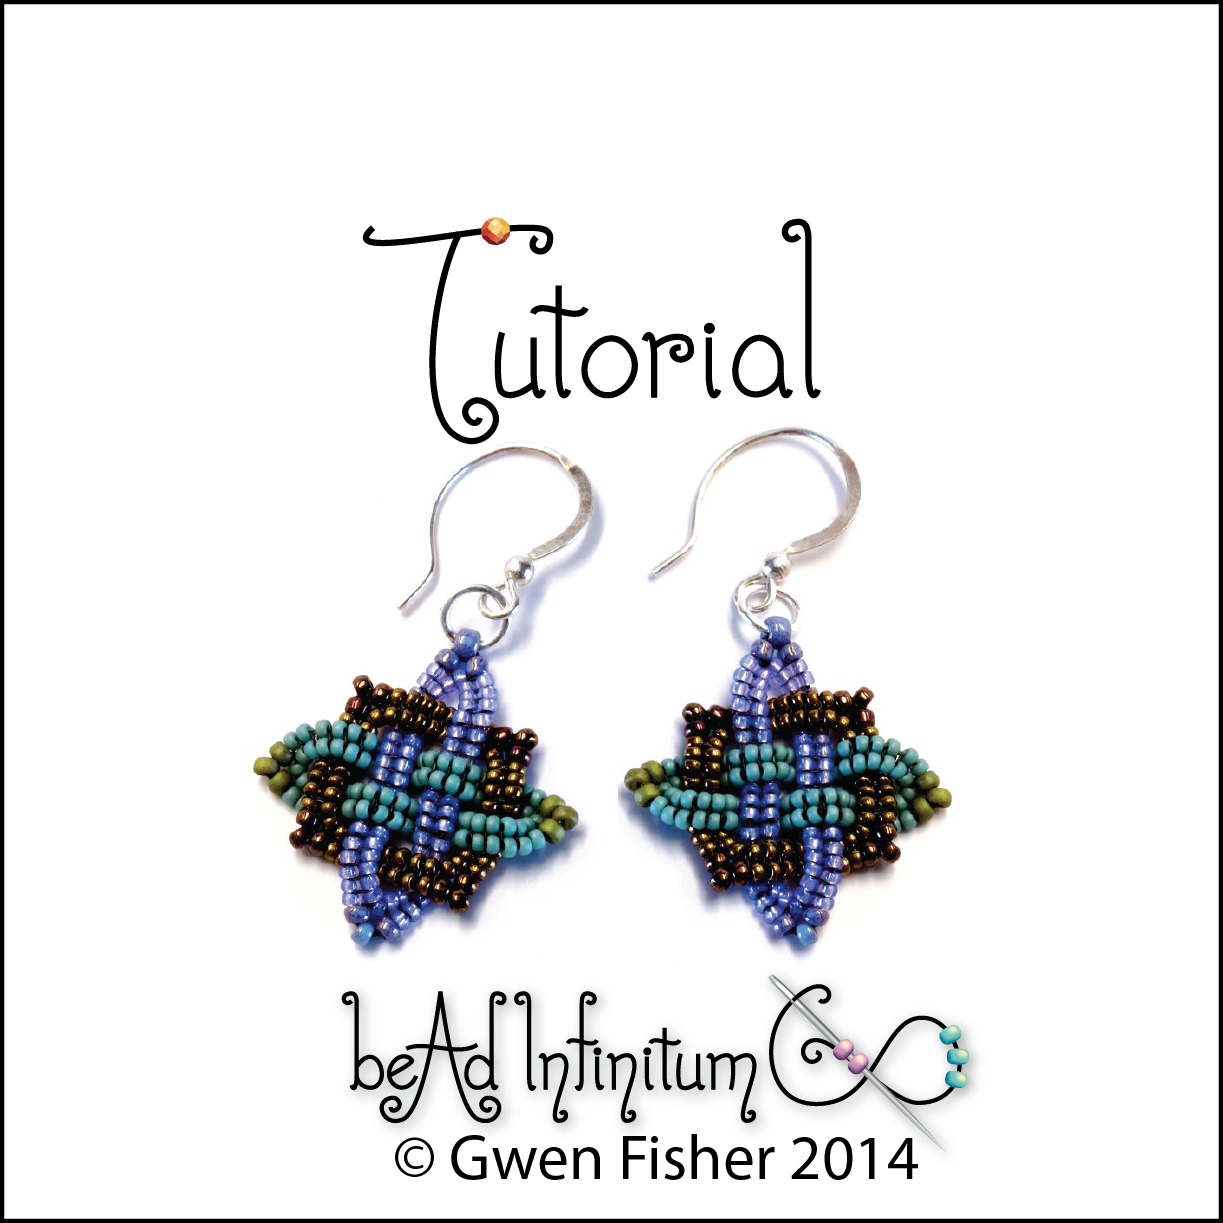 https://www.etsy.com/listing/174859574/tutorial-beaded-celtic-knot-earrings-and